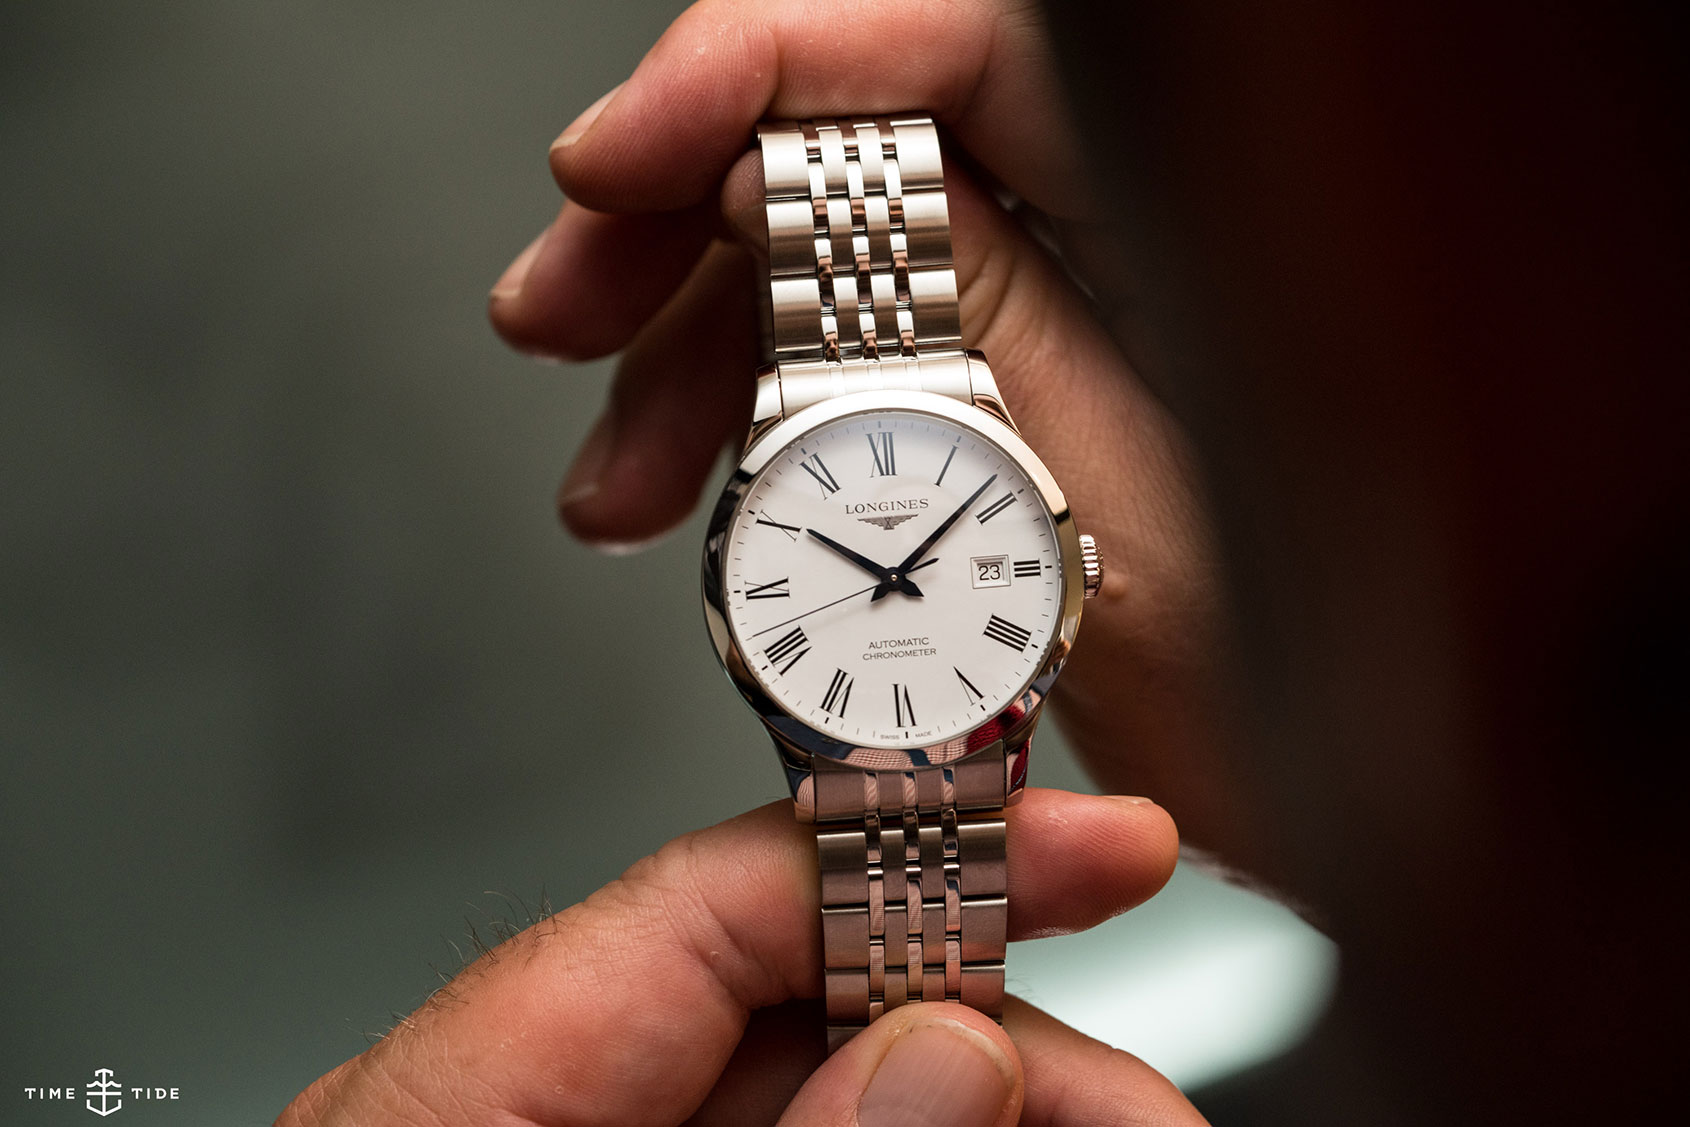 079a75a1a2a Longines Record is A Big Deal – Here s Why